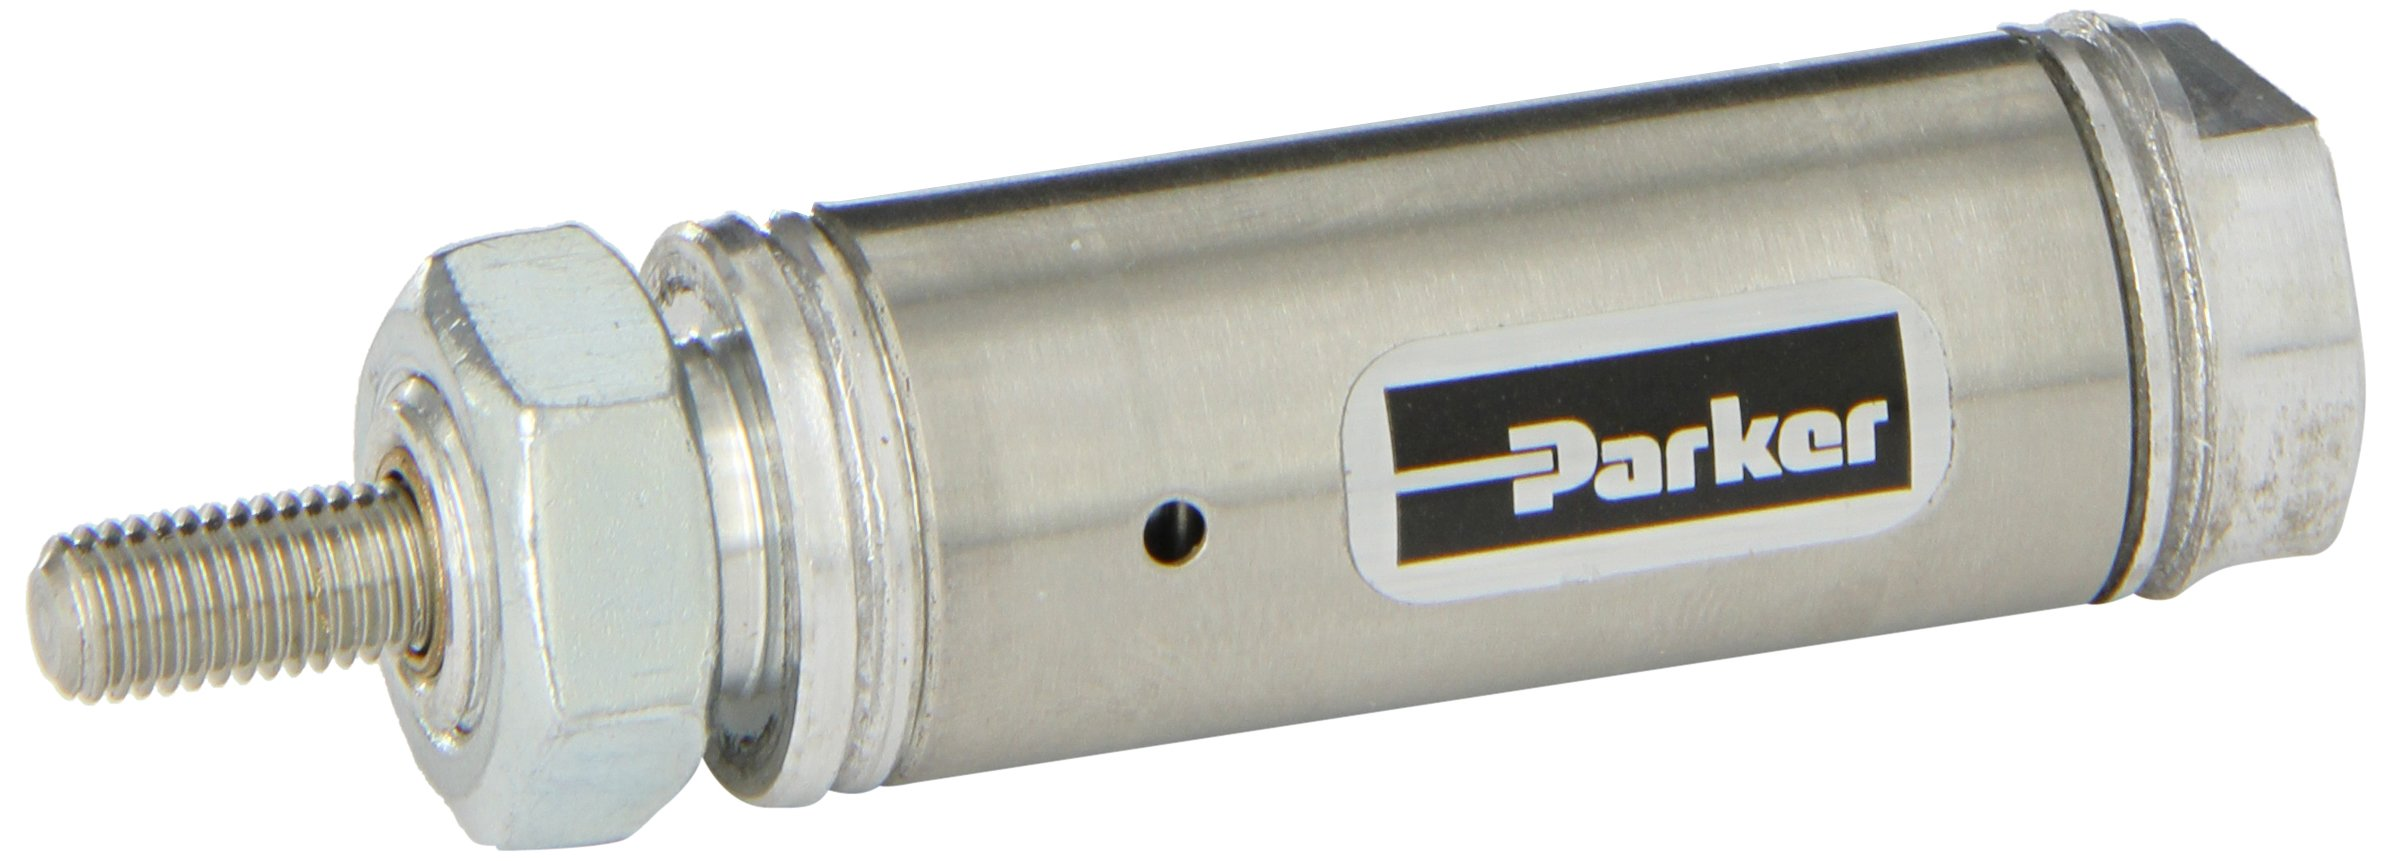 Parker .75NSR00.5 Stainless Steel Air Cylinder, Round Body, Single Acting, Spring Return, Nose Mount, Non-cushioned, 3/4 inches Bore, 1/2 inches Stroke, 1/4 inches Rod OD, 1/8'' NPT Port